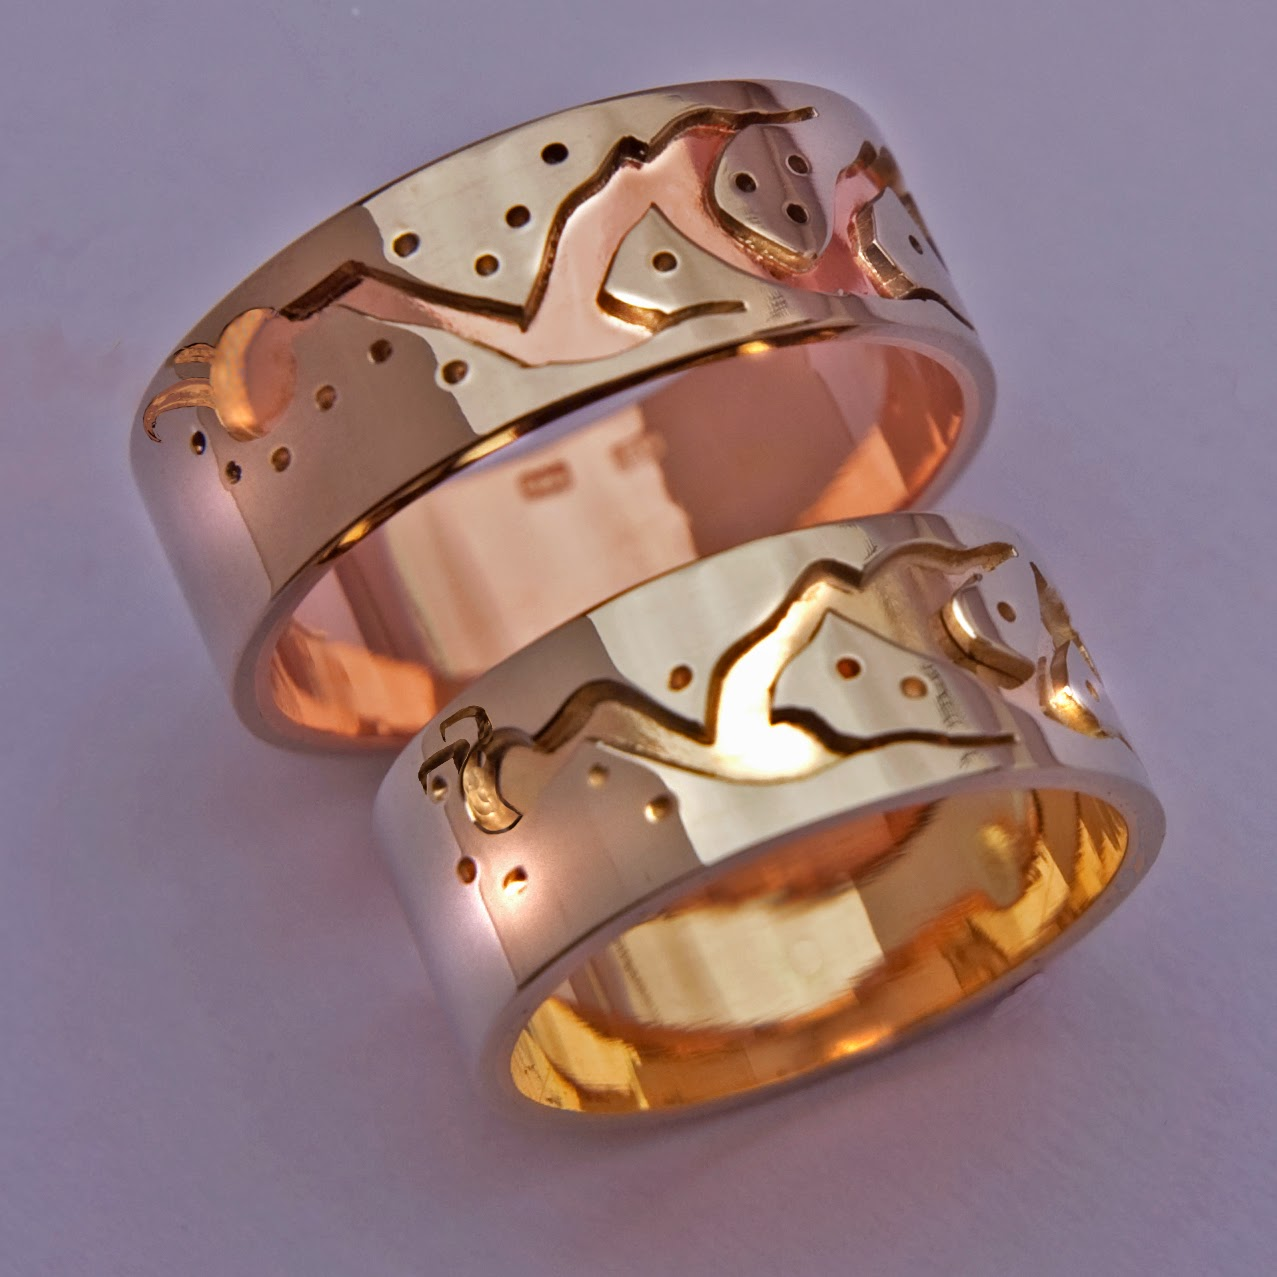 Mishi-ginebig design wedding bands by Native Woodland jeweler Zhaawano Giizhik